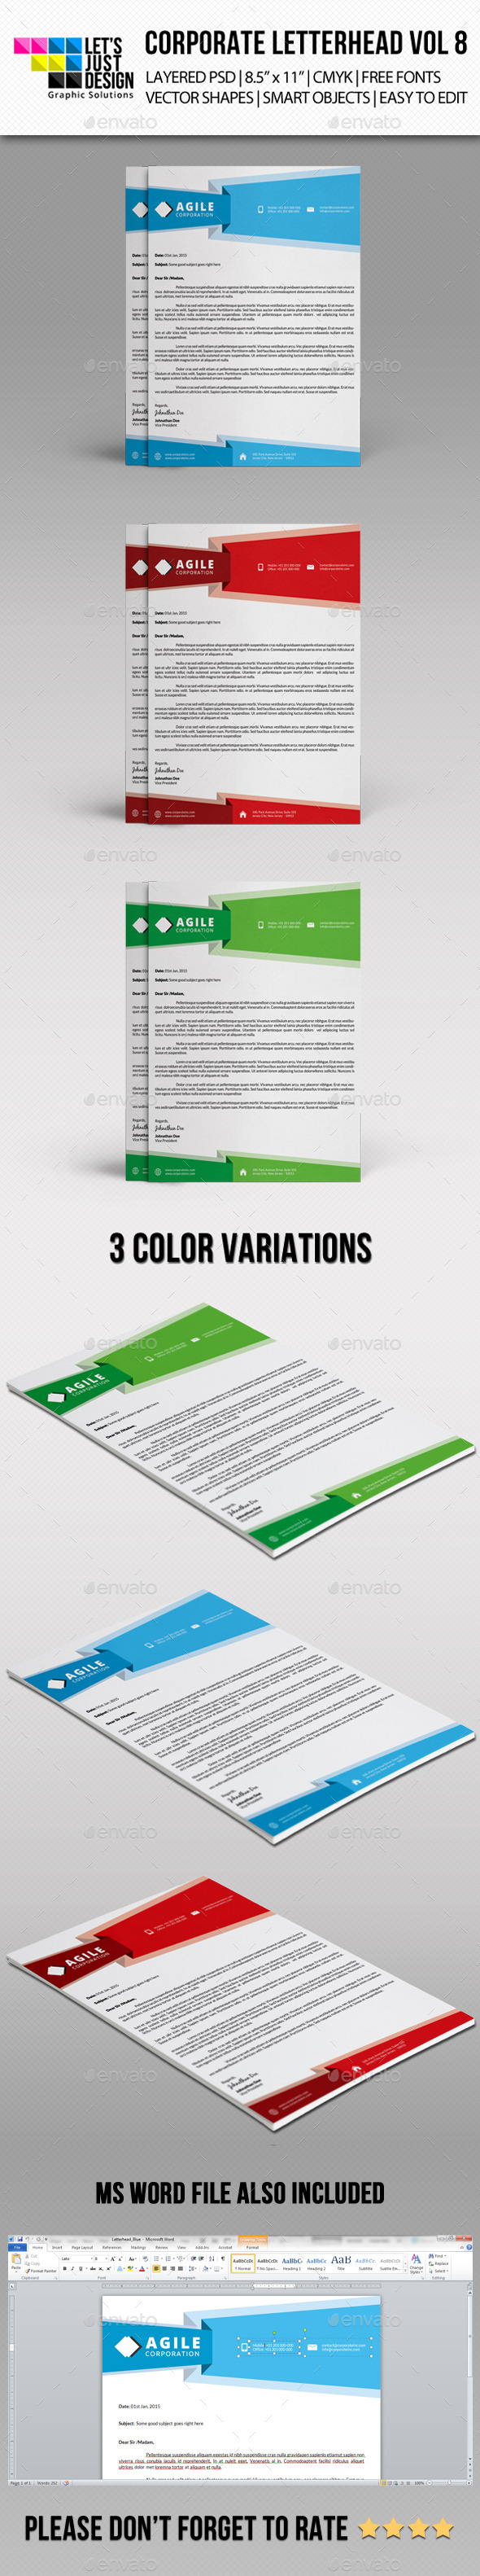 GraphicRiver Corporate Letterhead Vol 8 10145376